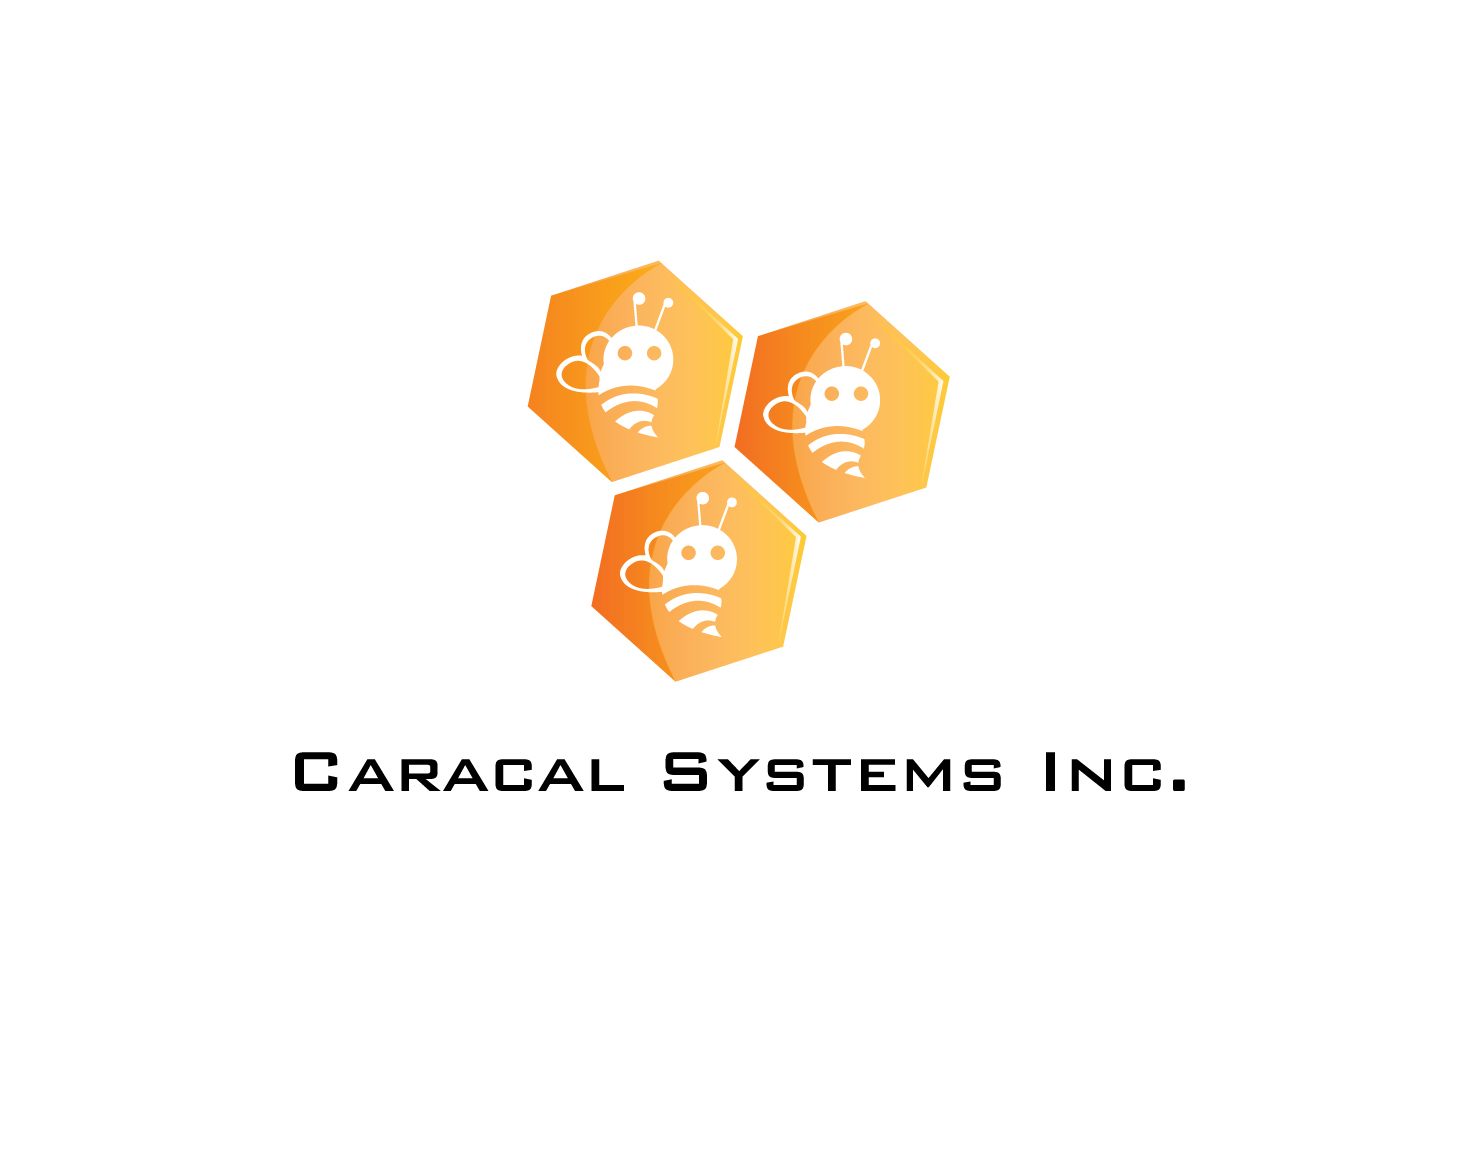 Logo Design by rA - Entry No. 96 in the Logo Design Contest Inspiring Logo Design for Caracal Systems Inc..